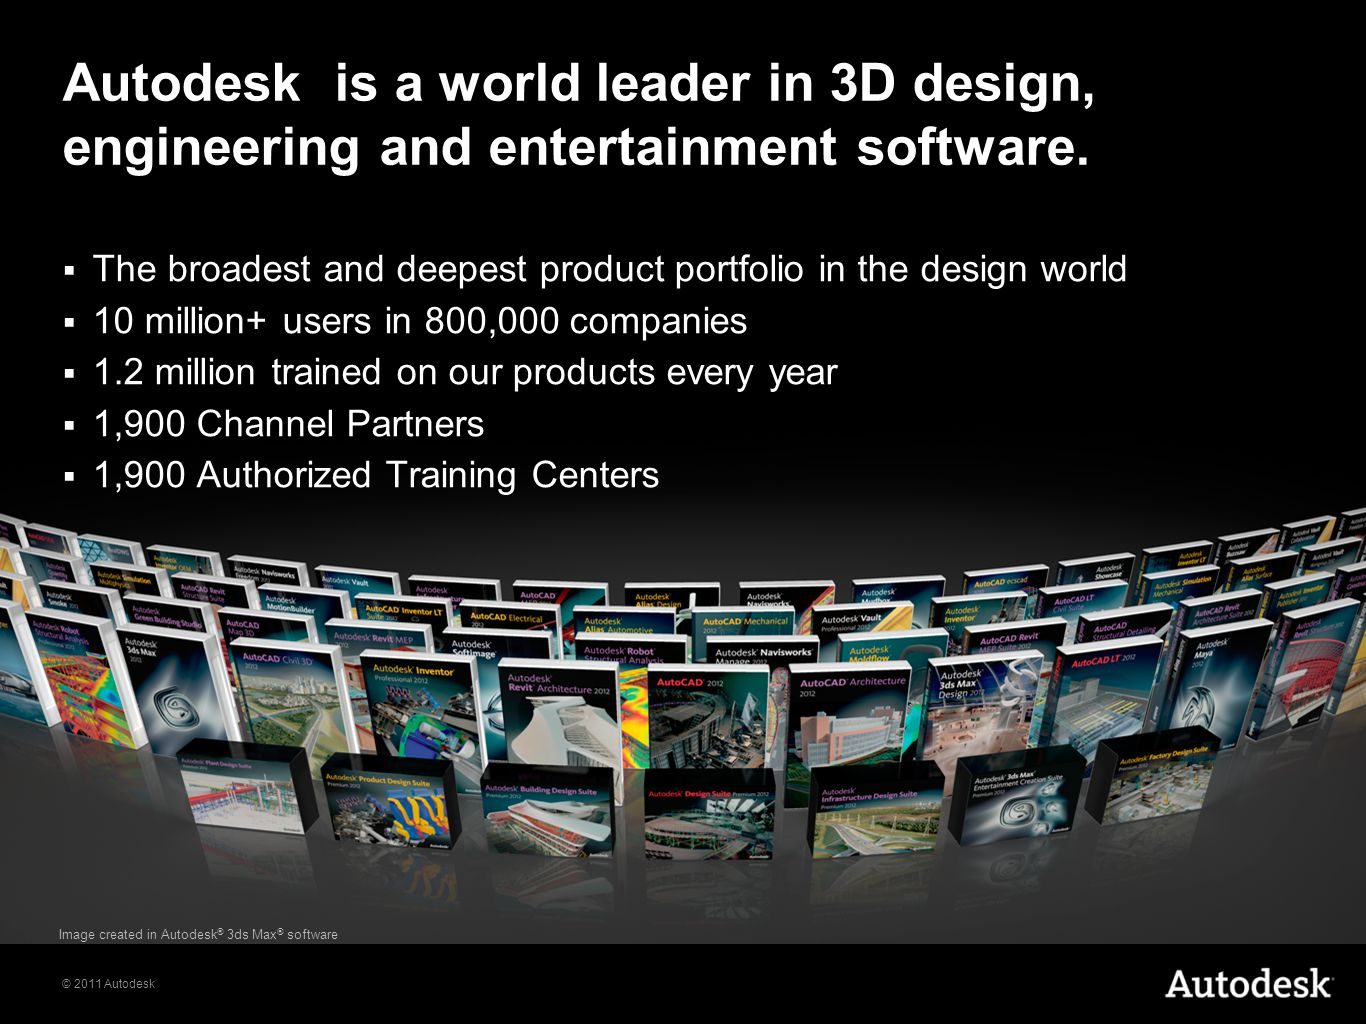 © 2011 Autodesk Autodesk is a world leader in 3D design, engineering and entertainment software.